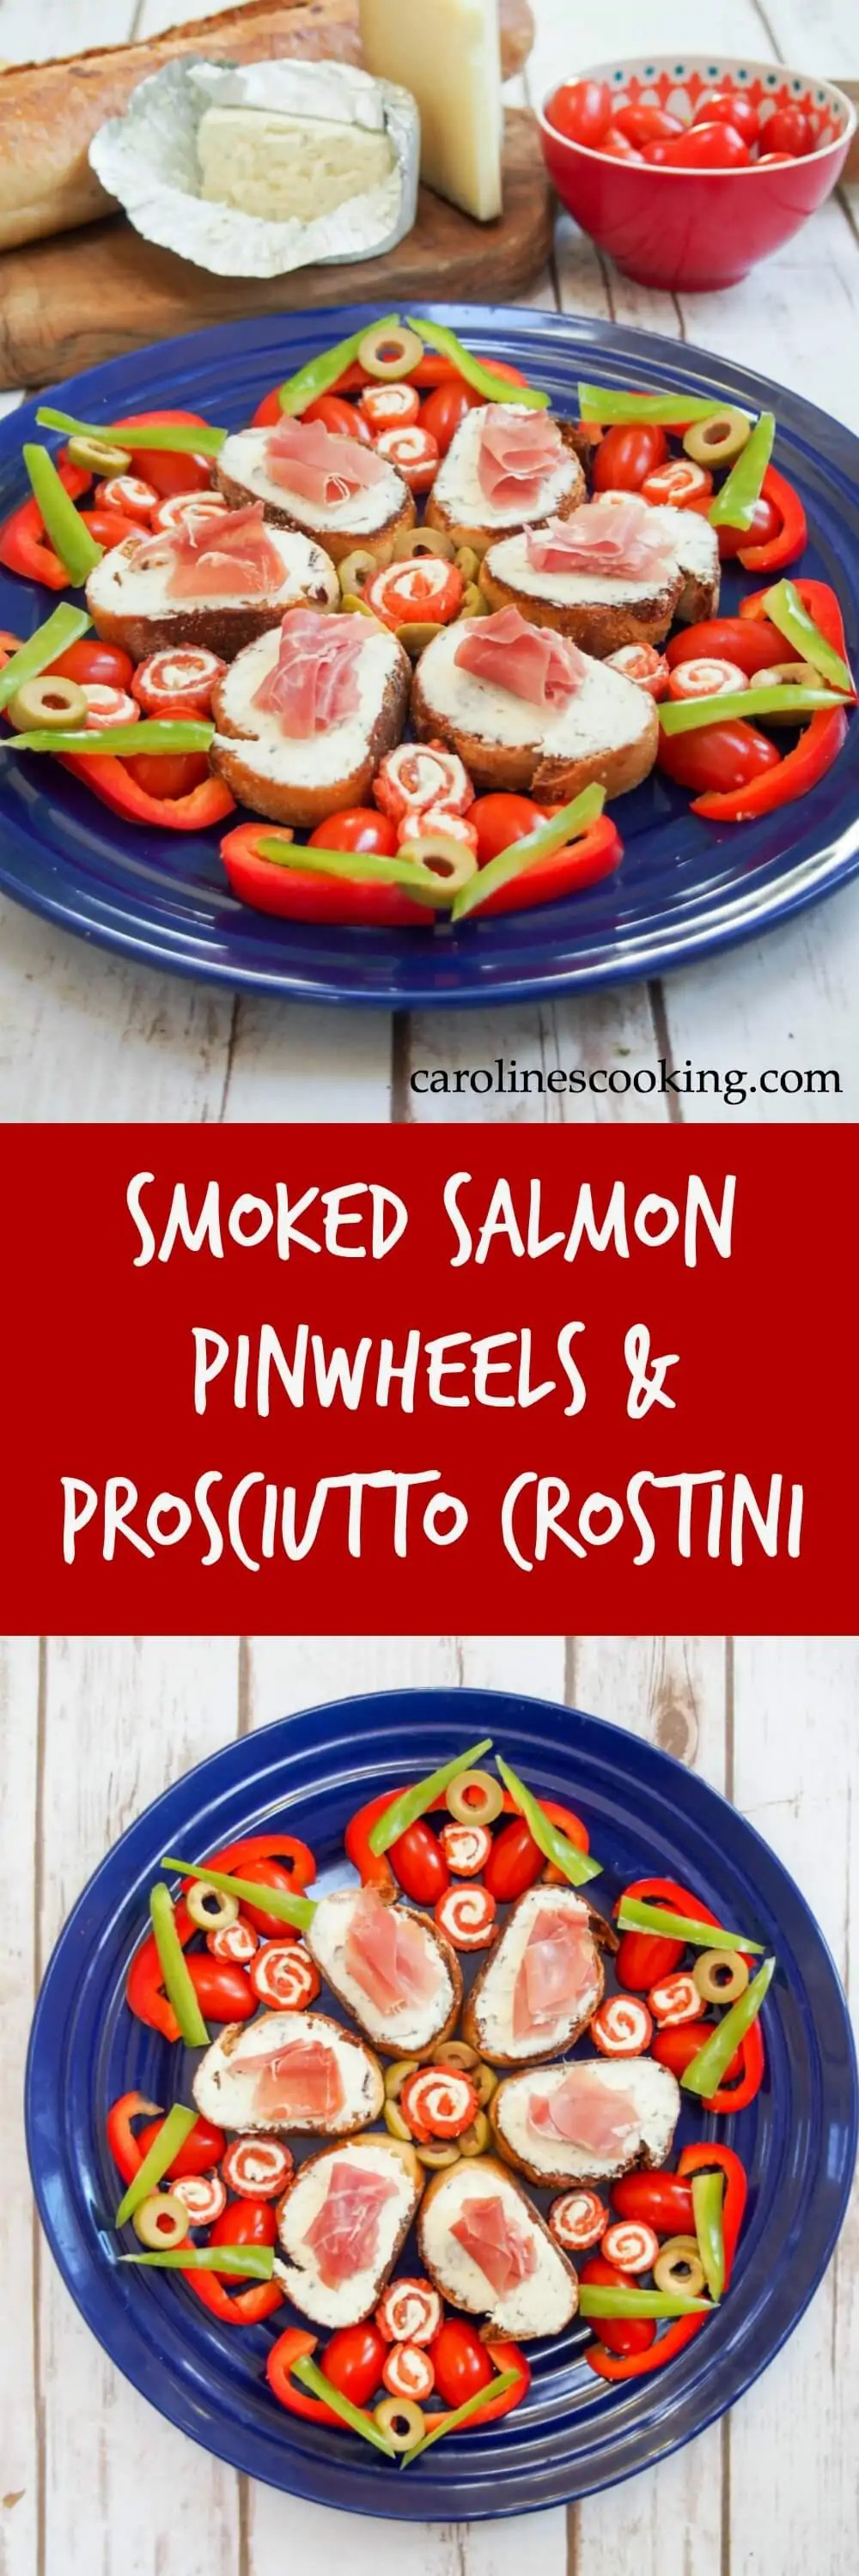 Smoked salmon pinwheels & prosciutto crostini make super simple, flavorful appetizers but can be arranged into an impressive, festive star. A perfect appetizer plate for holiday entertaining (or anytime).